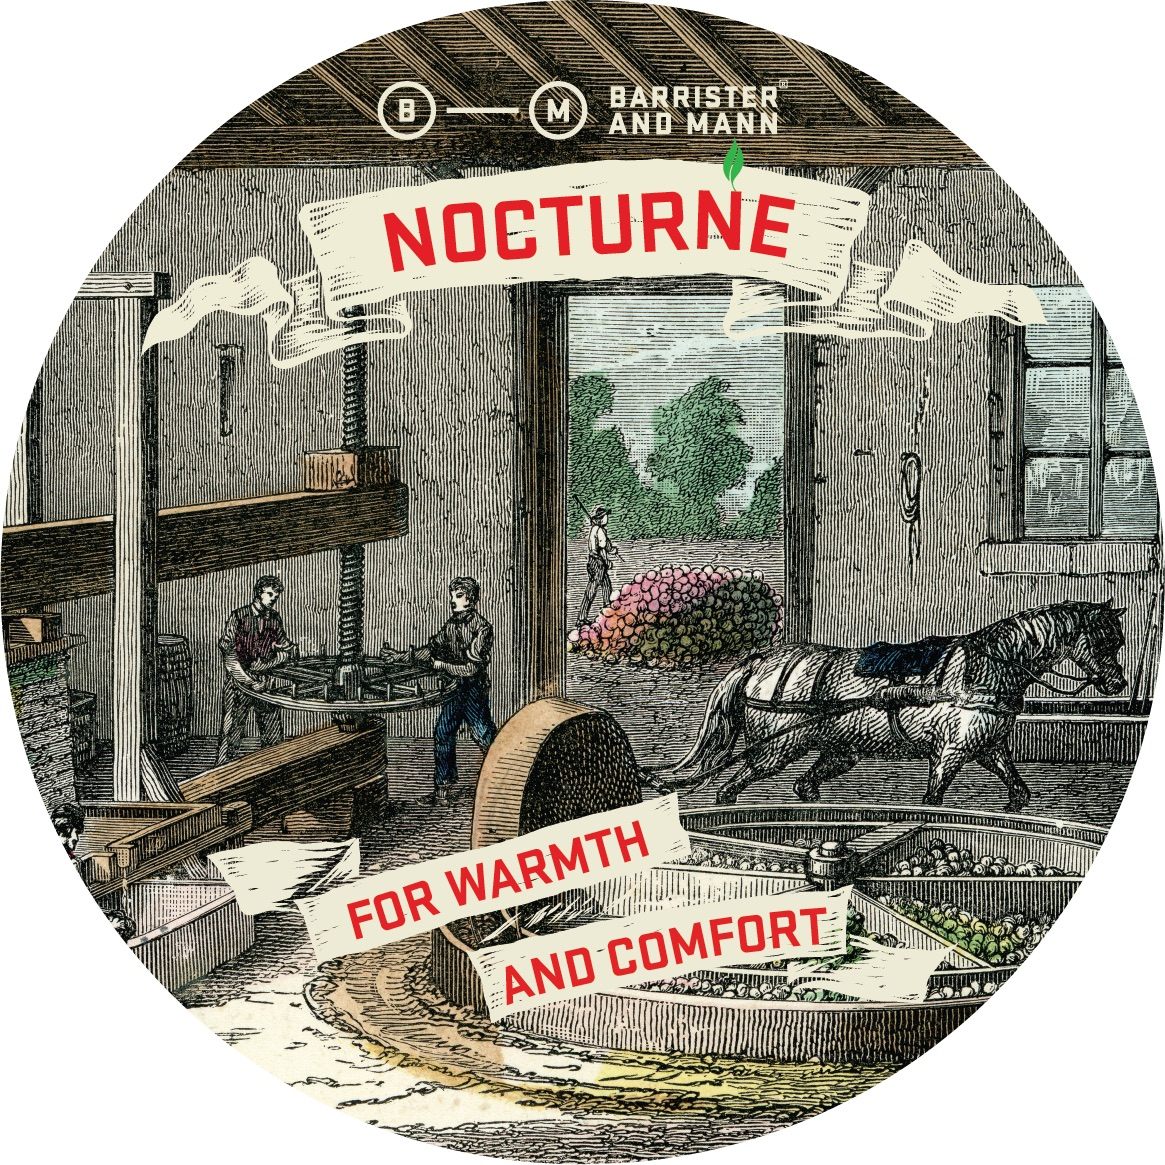 Barrister and Mann - Barrister and Mann - Nocturne - Soap image